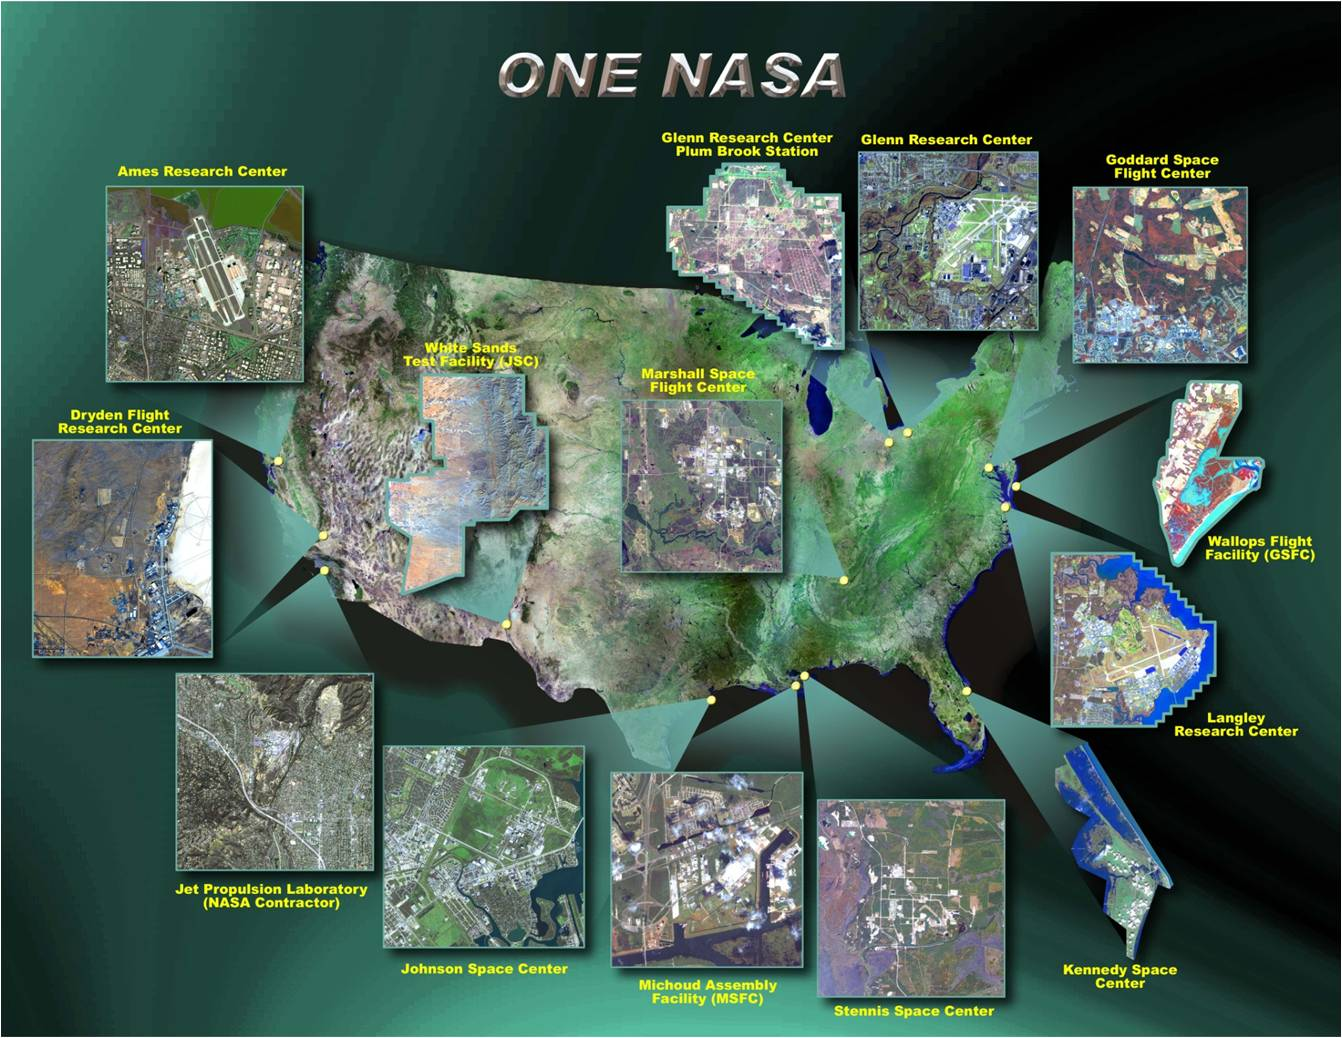 Picture of a map of the United States with all of the NASA center locations highlighted.